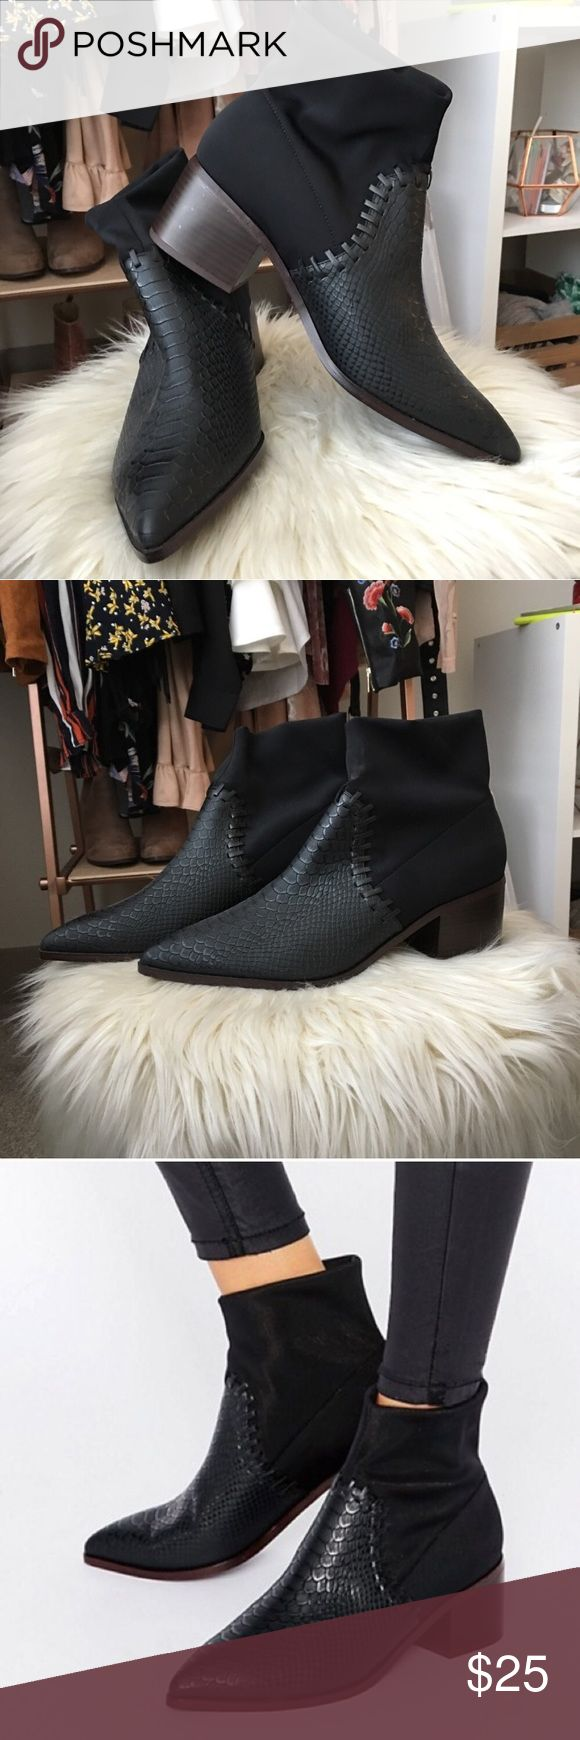 ISO Black Pointed Booties These are the ASOS Reynolds ankle boots. Currently looking for in a size 9 or 9.5. Any pointed ankle boot with a flat heel would work, the texture would be a plus! Comment here if you see any. DO NOT BUY THIS LISTING. ISO MEANS IN SEARCH OF. ASOS Shoes Ankle Boots & Booties